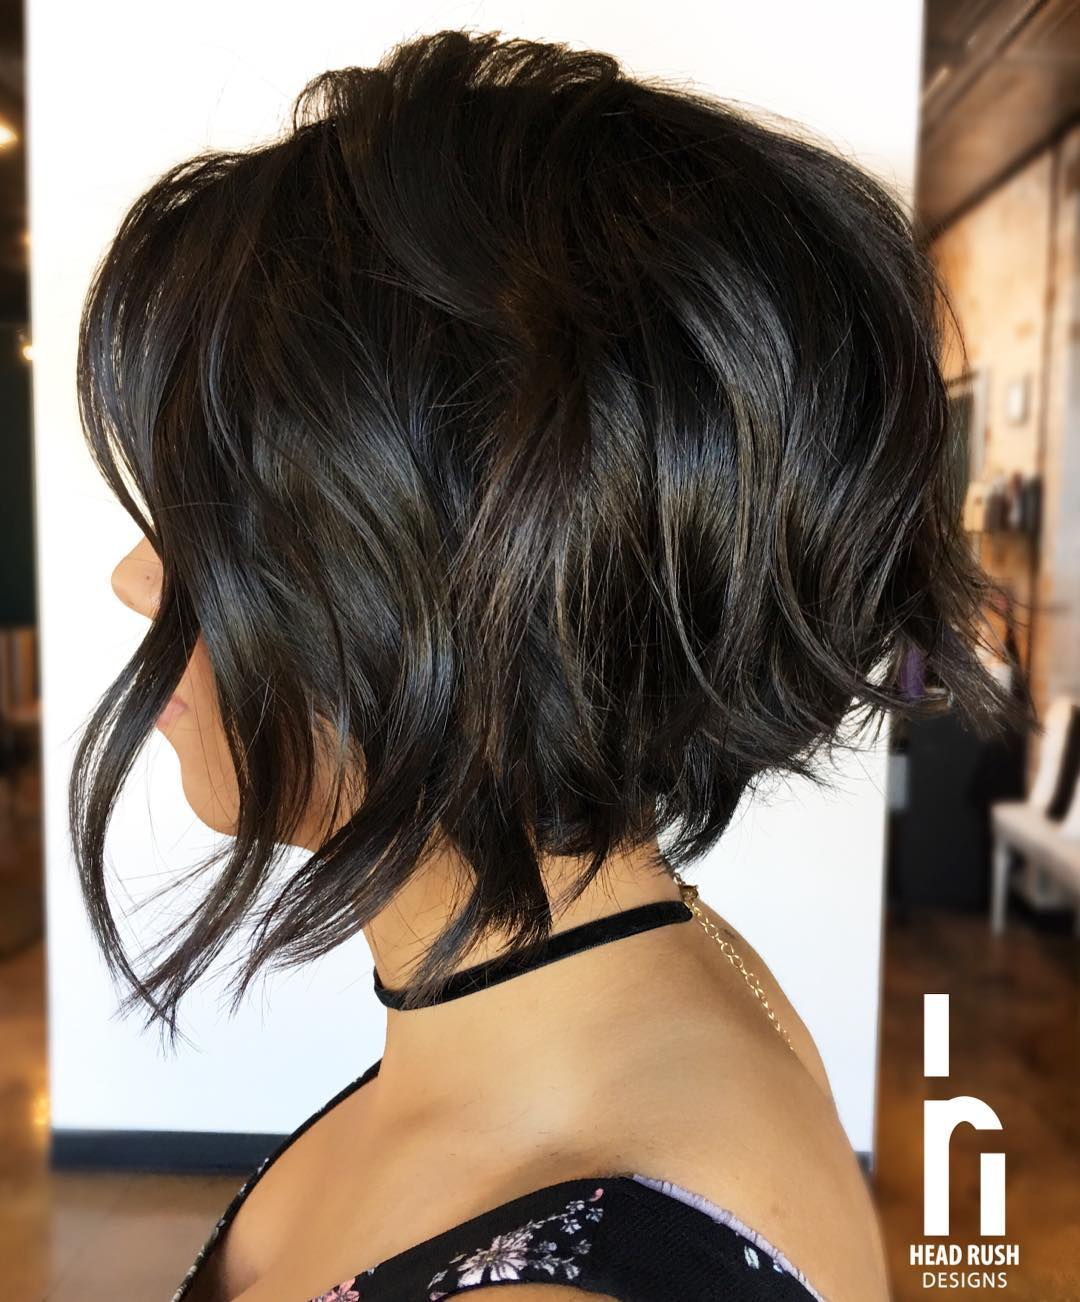 30 Super-Hot Stacked Bob Haircuts: Short Hairstyles for Women 2018